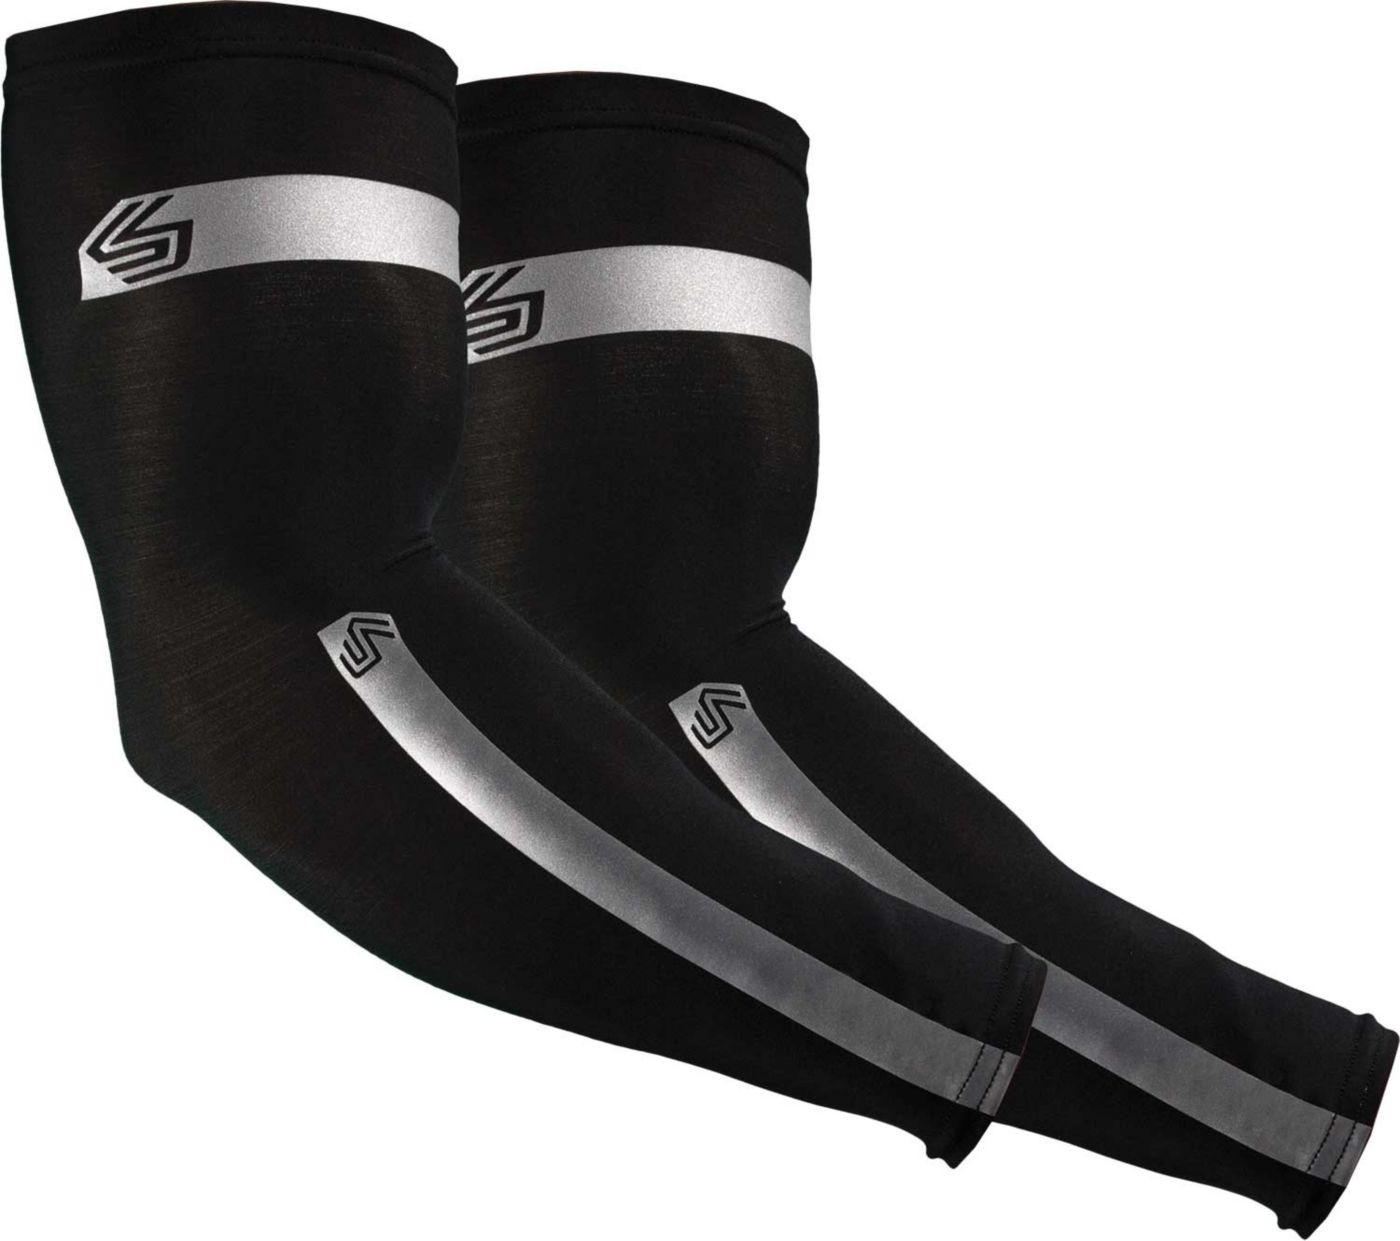 Shock Doctor Reflective Compression Arm Sleeves